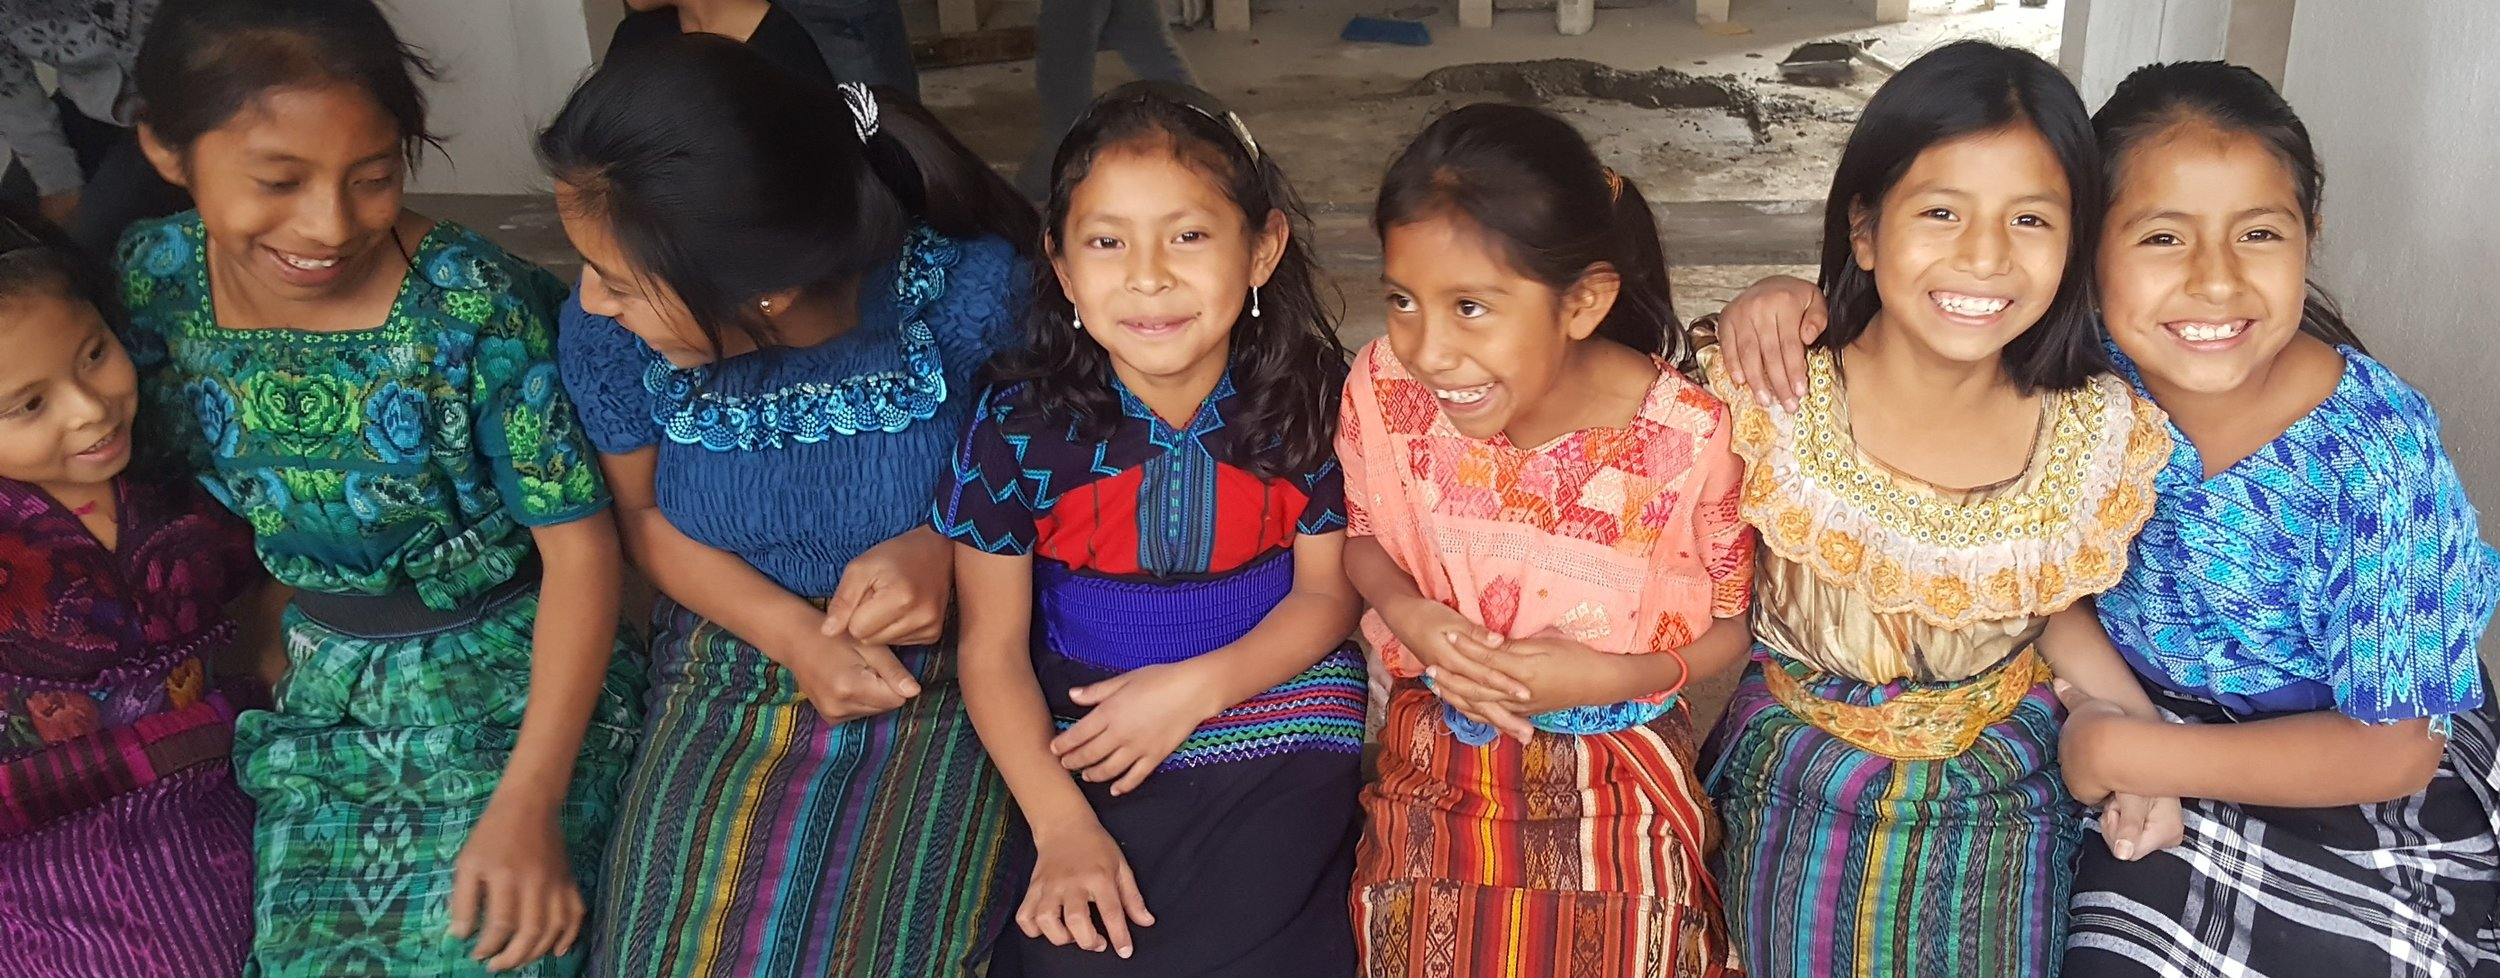 Education for hope. - Donate here to buy books for Guatemalan children.